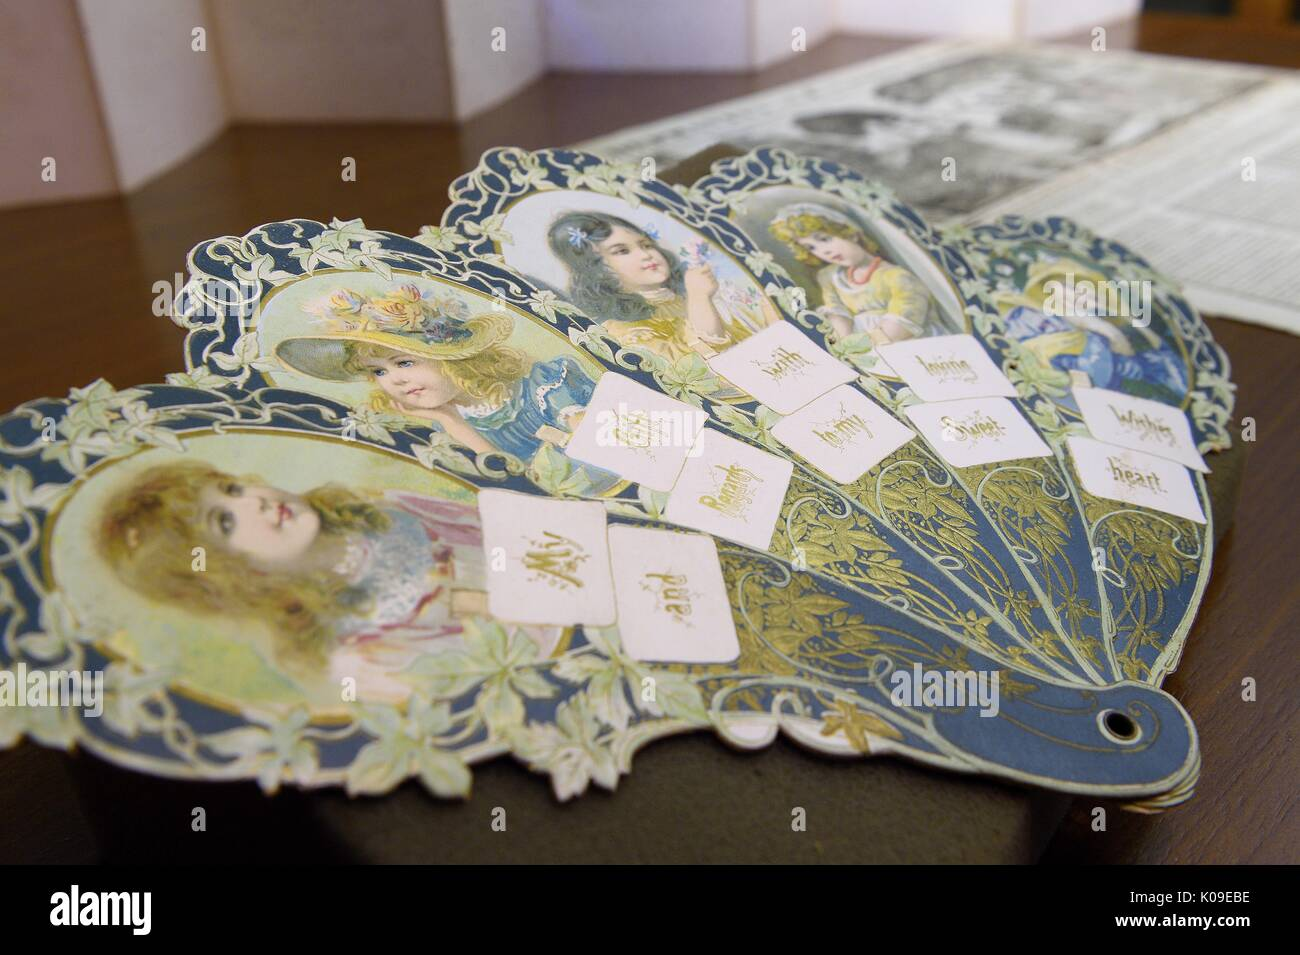 A paper fan artifact with faces of female children on it on display at the Dirty Books and Longing Looks event held at the library, February 11, 2016. - Stock Image